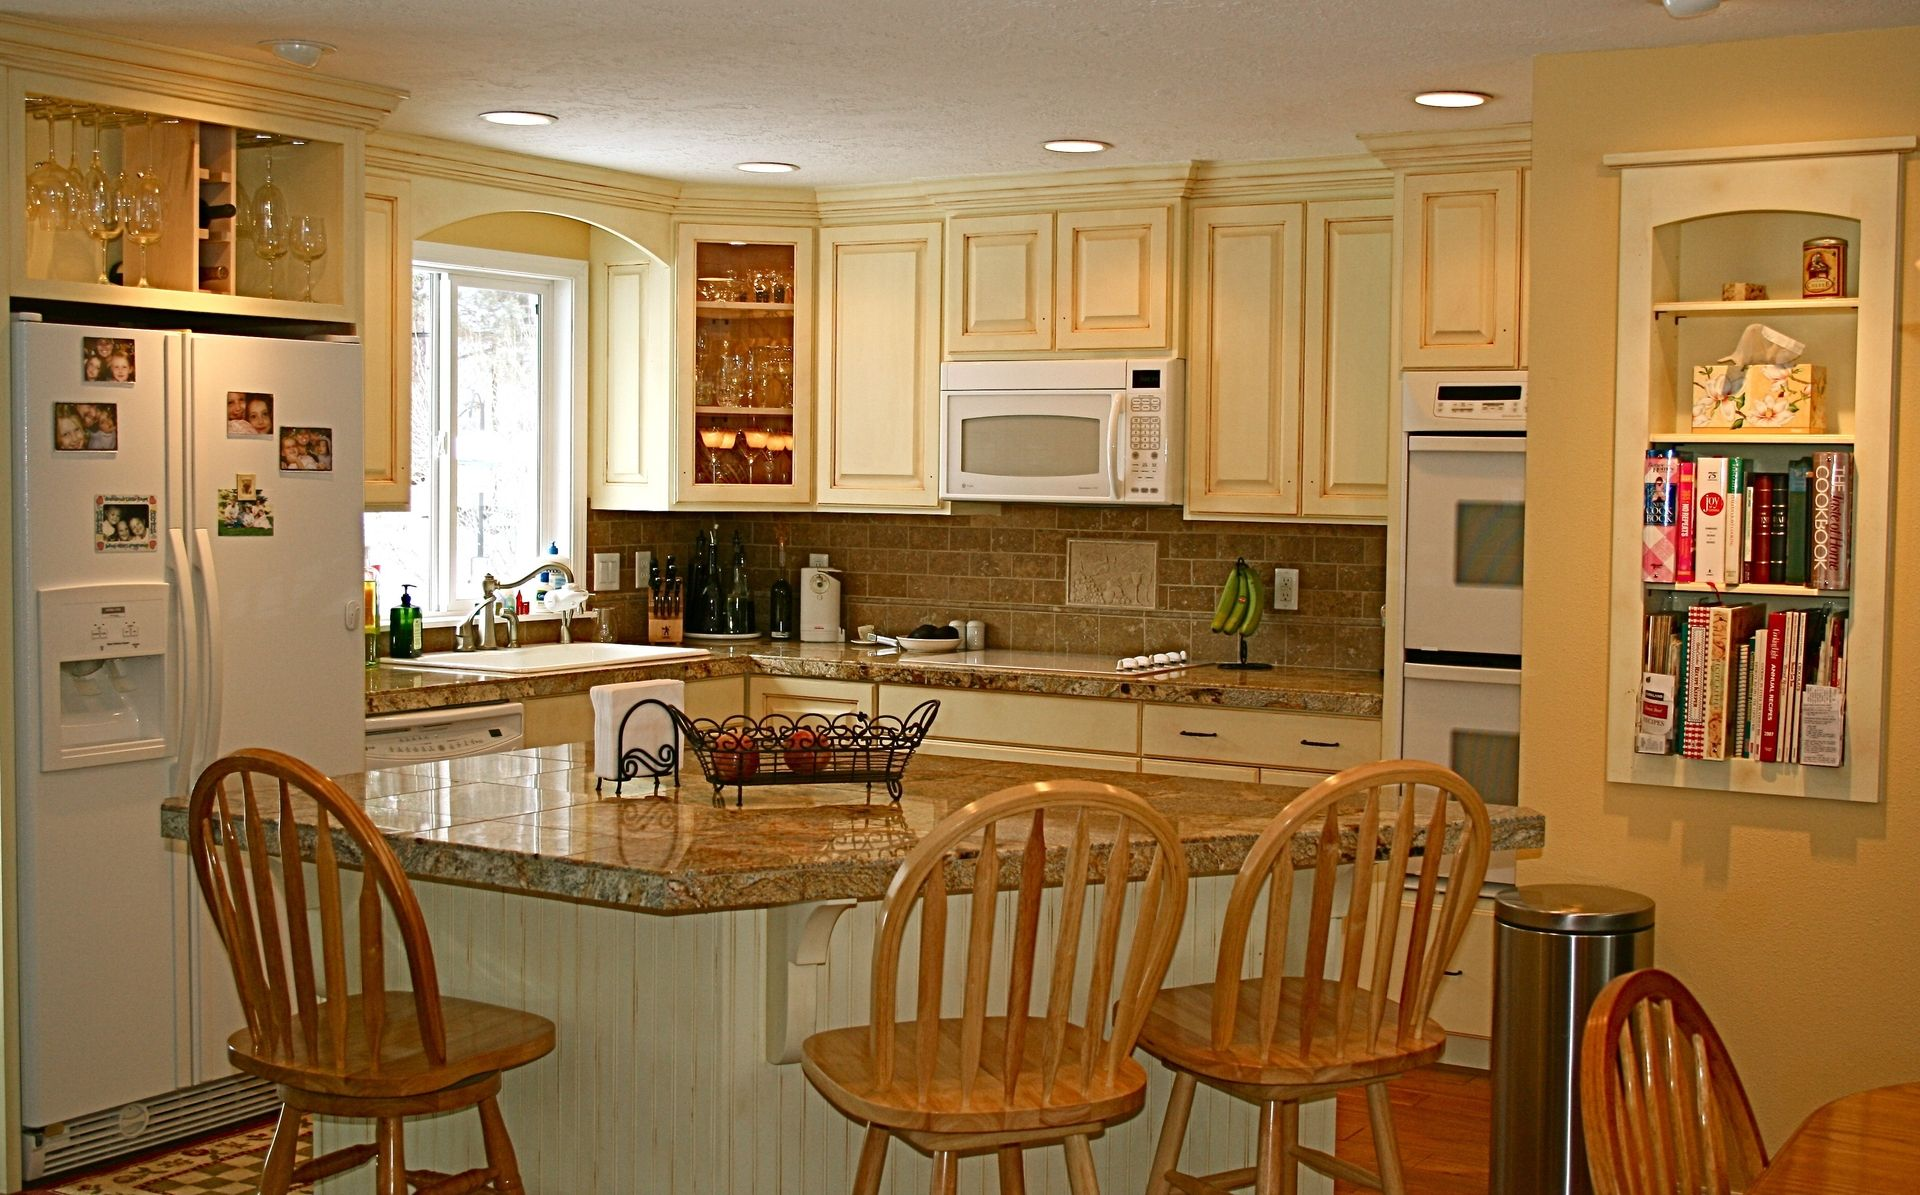 custom made warm and inviting kitchen by grindstone mill. Black Bedroom Furniture Sets. Home Design Ideas